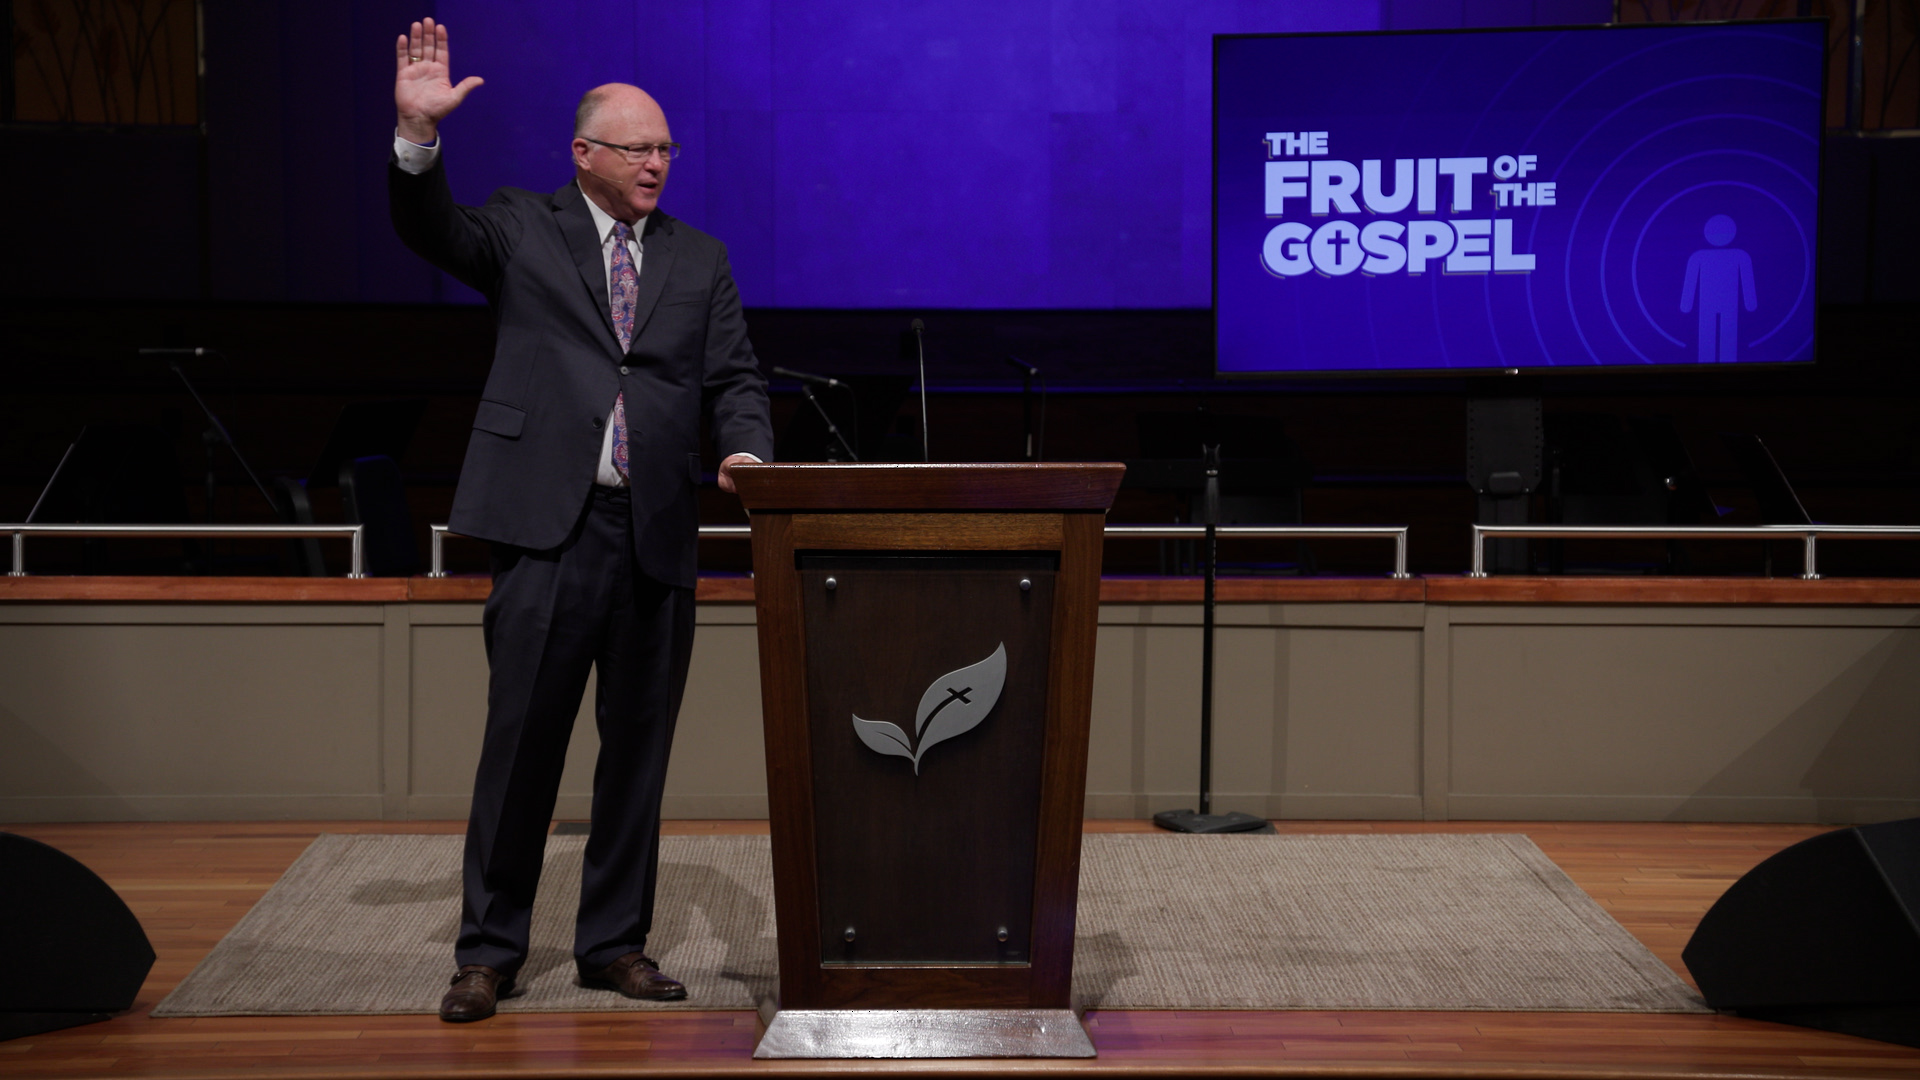 Pastor Paul Chappell: The Fruit of the Gospel